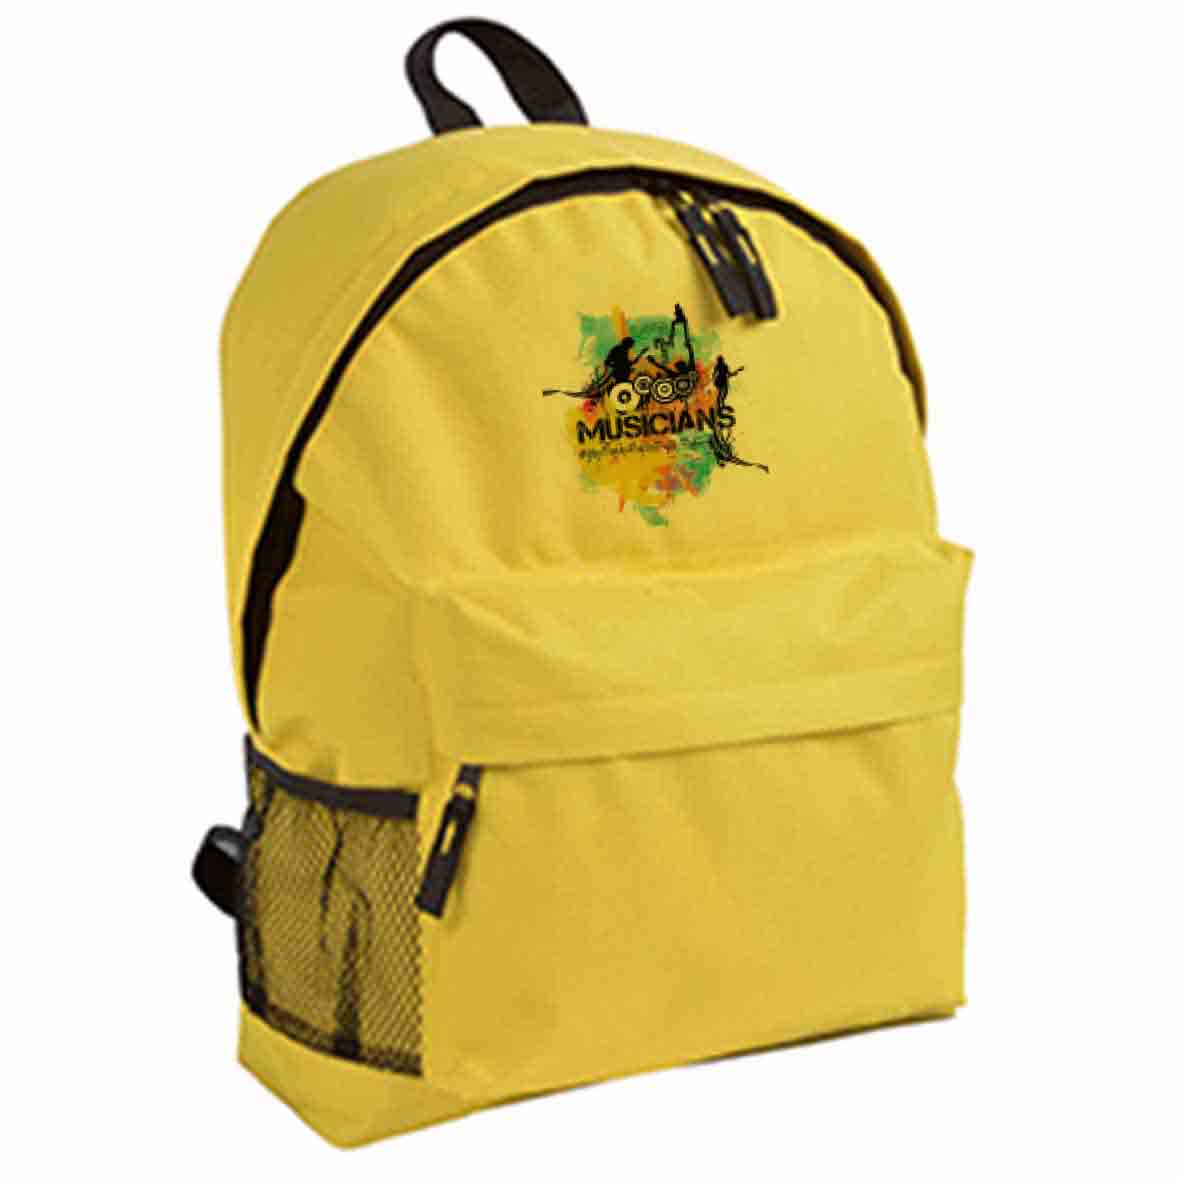 600d polyester backpack with zipped front pocket  - Yellow sip-1310106 subl